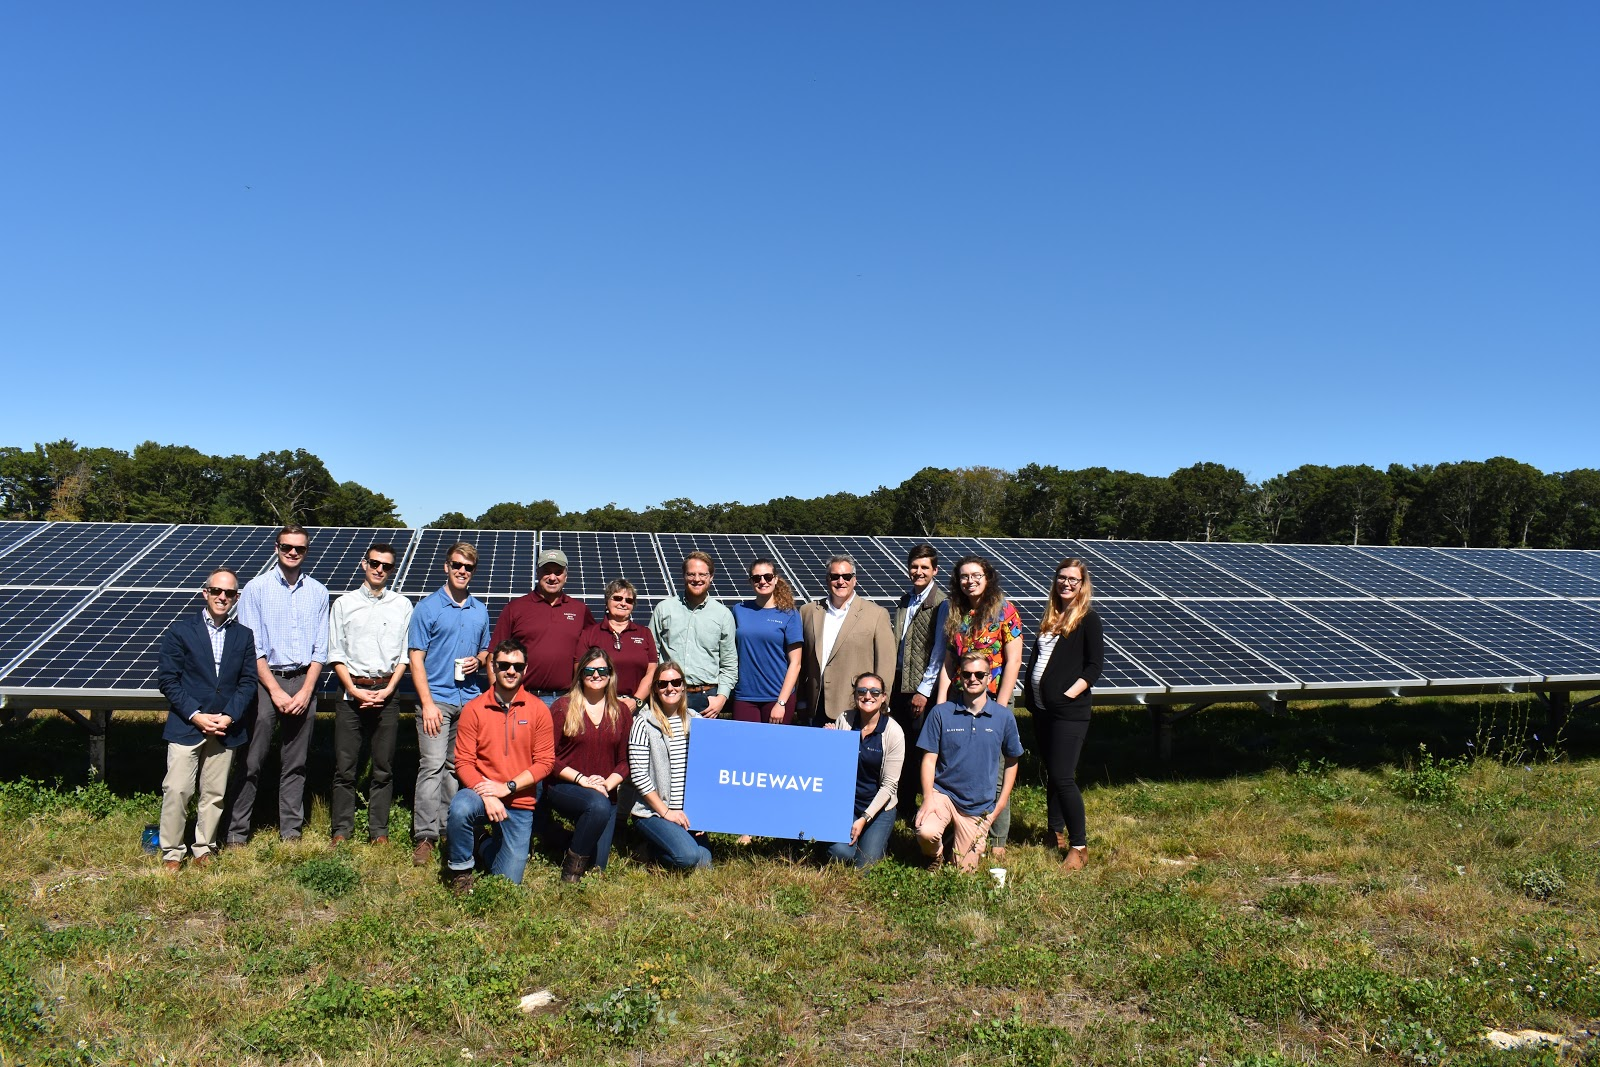 BlueWave's team gathers for a group photo next to a solar panel